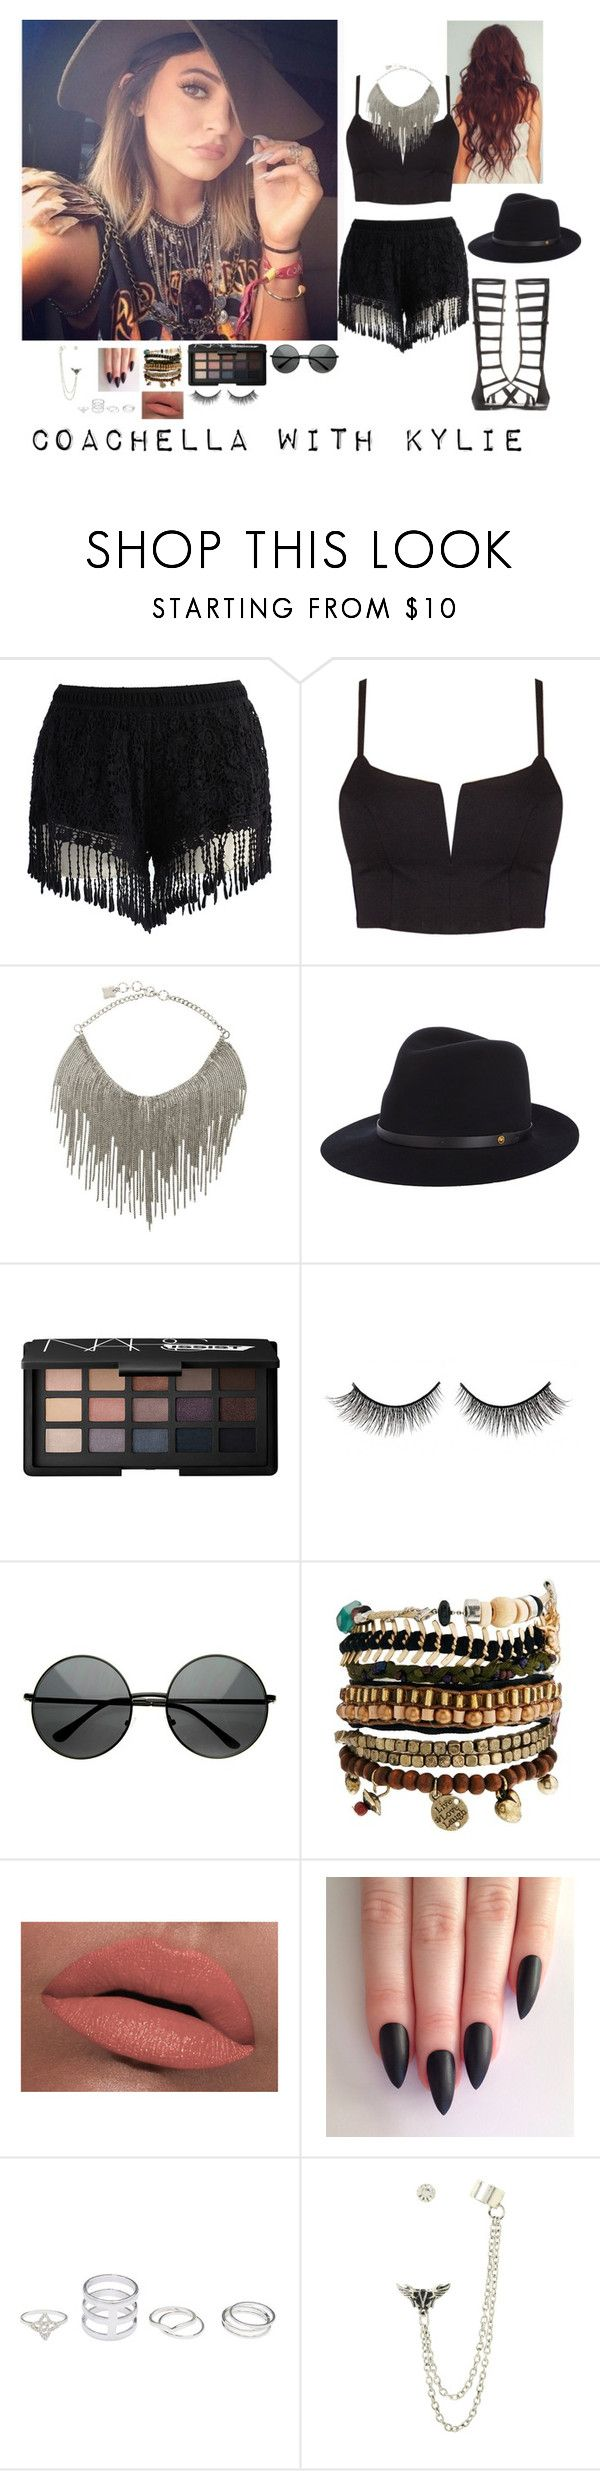 """""""Coachella With Kylie (Songs w/ it)"""" by shay-1d ❤ liked on Polyvore featuring mode, Kendall + Kylie, Chicwish, BCBGMAXAZRIA, rag & bone, NARS Cosmetics, Rimini, ZeroUV, Pull&Bear et LORAC"""